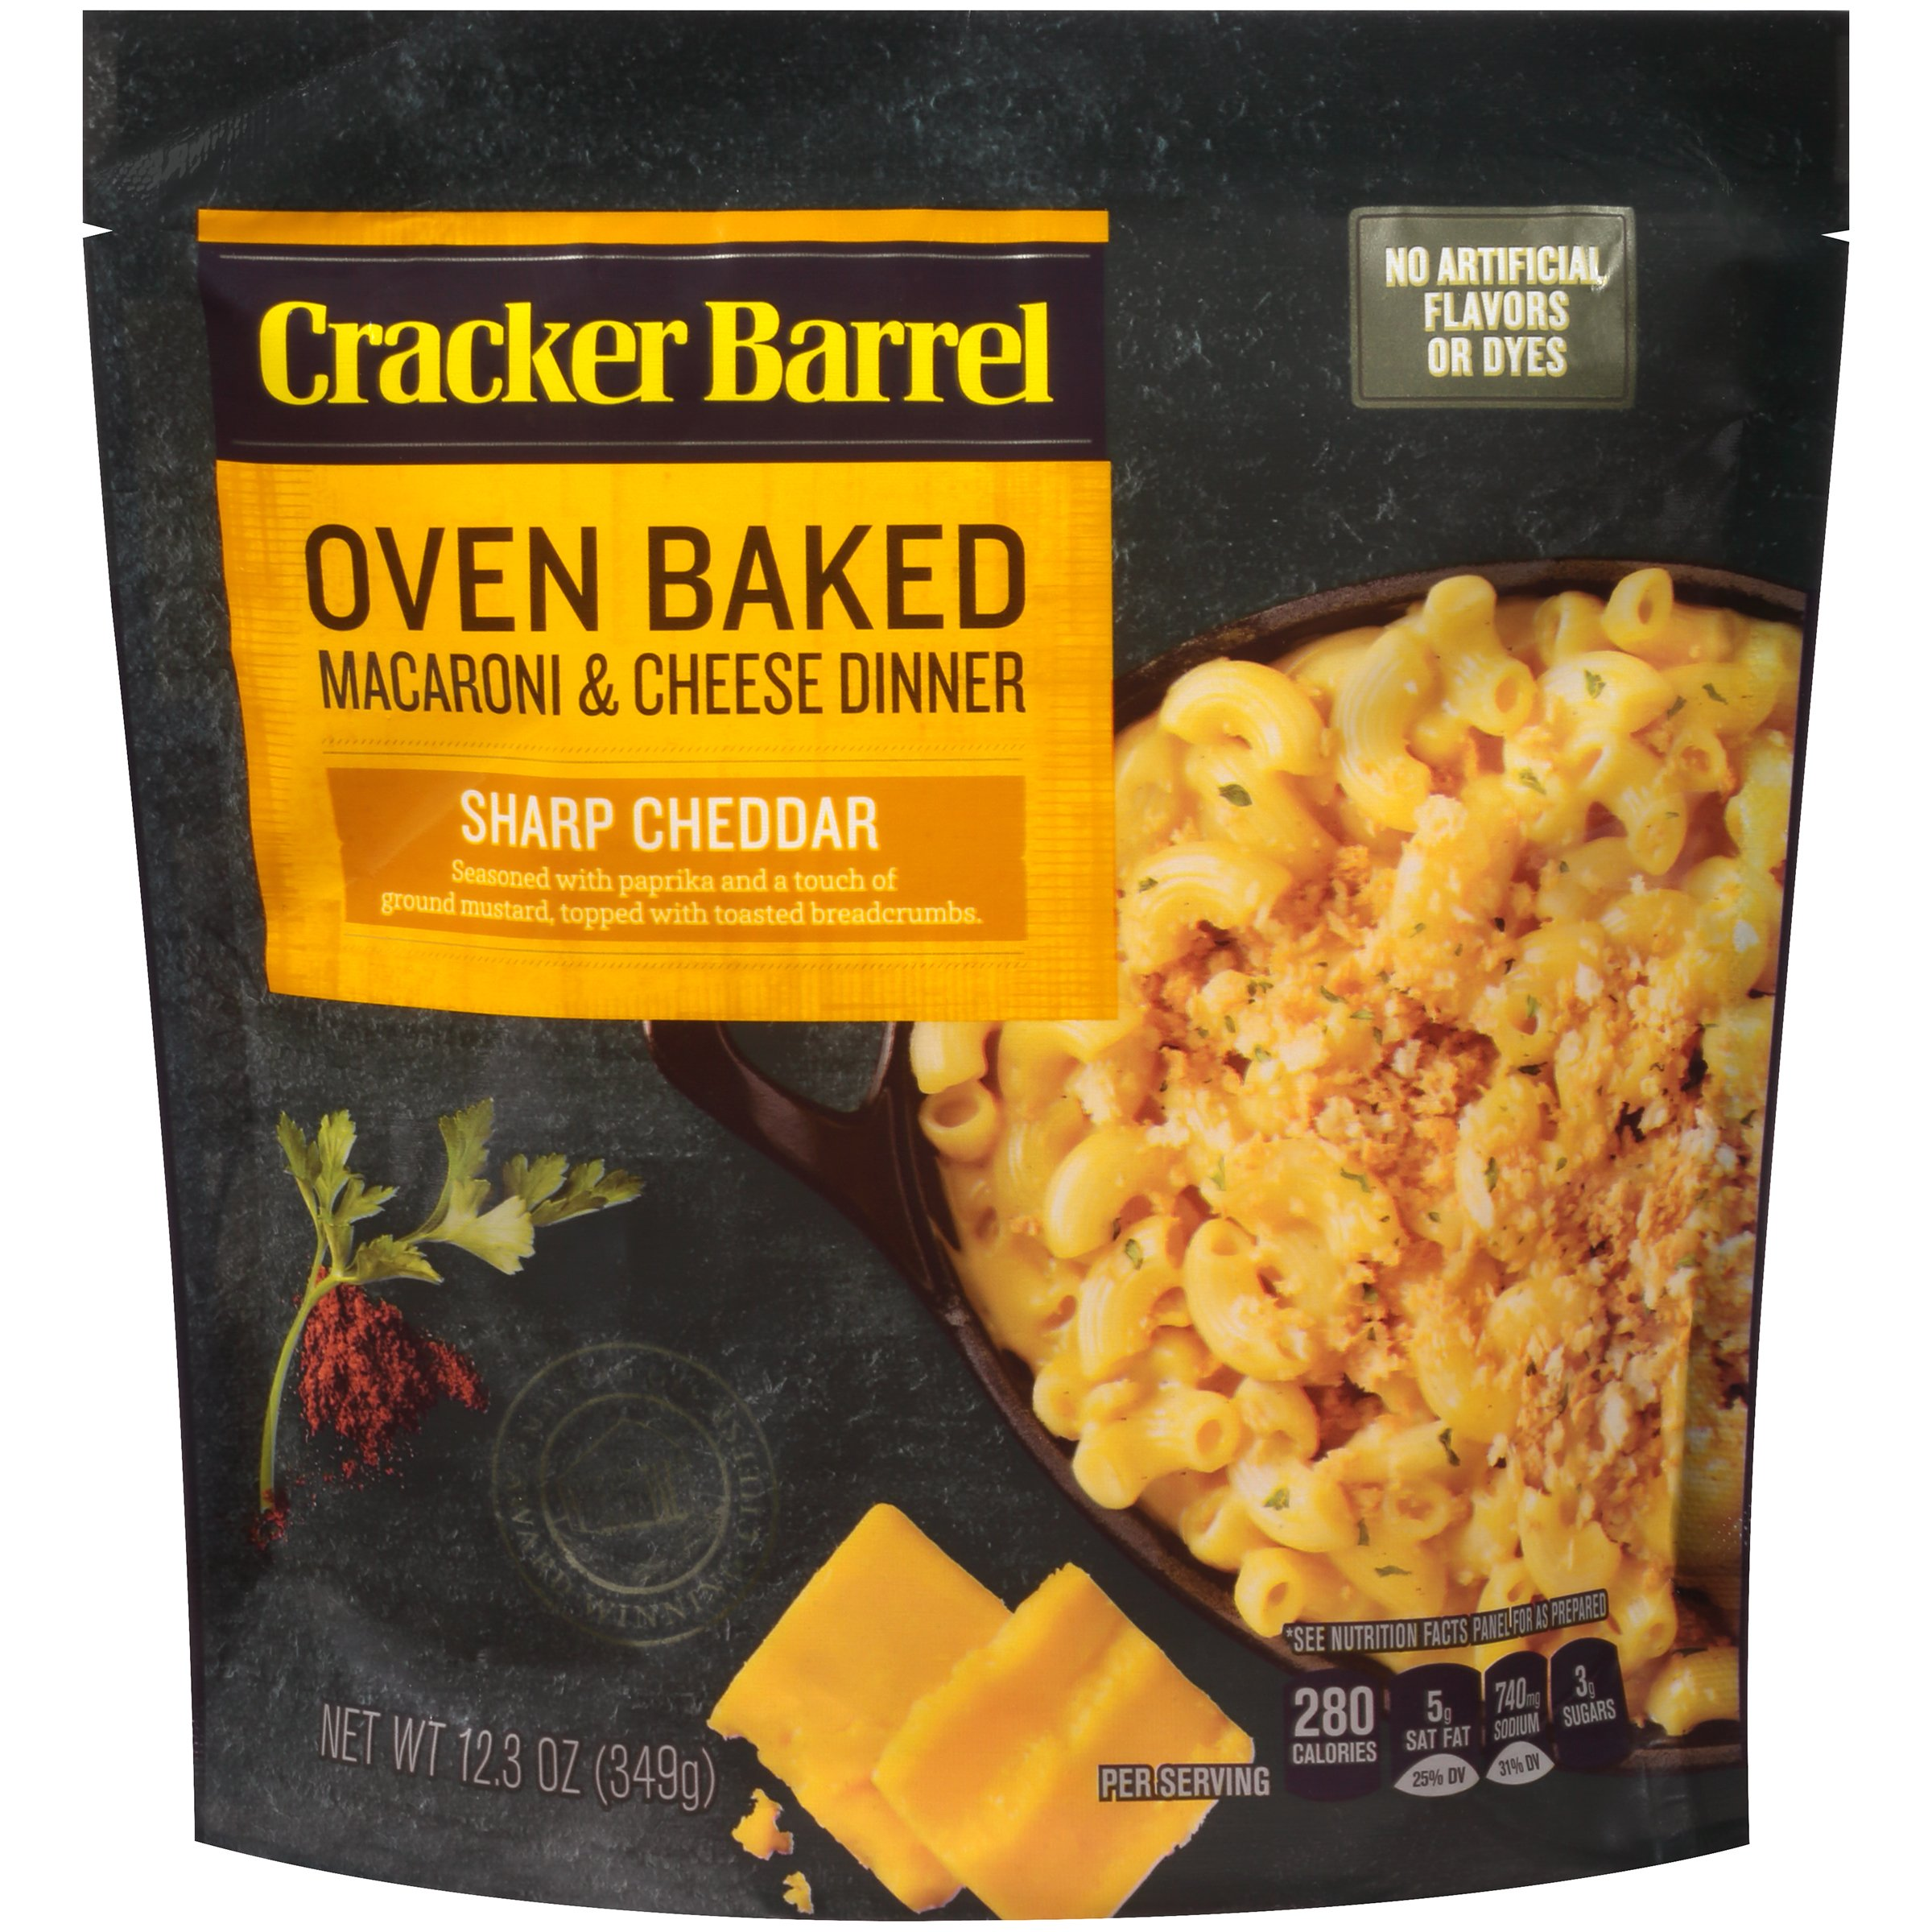 Cracker Barrel Oven Baked Macaroni & Cheese Dinner, Sharp Cheddar, 12.34 Ounce (Pack of 5) by Cracker Barrel